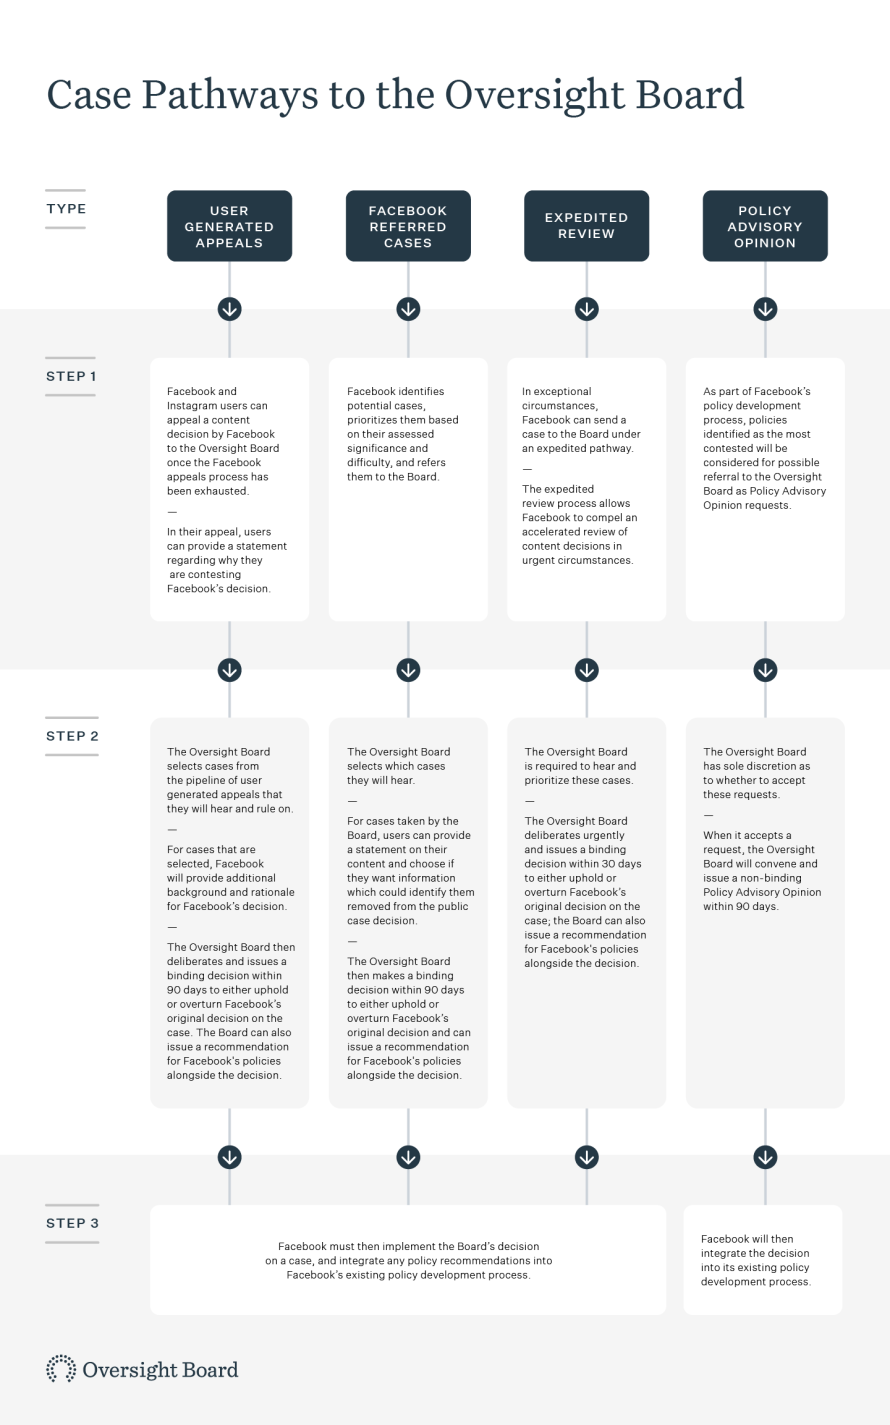 Infographic showing Case Pathways to the Oversight Board